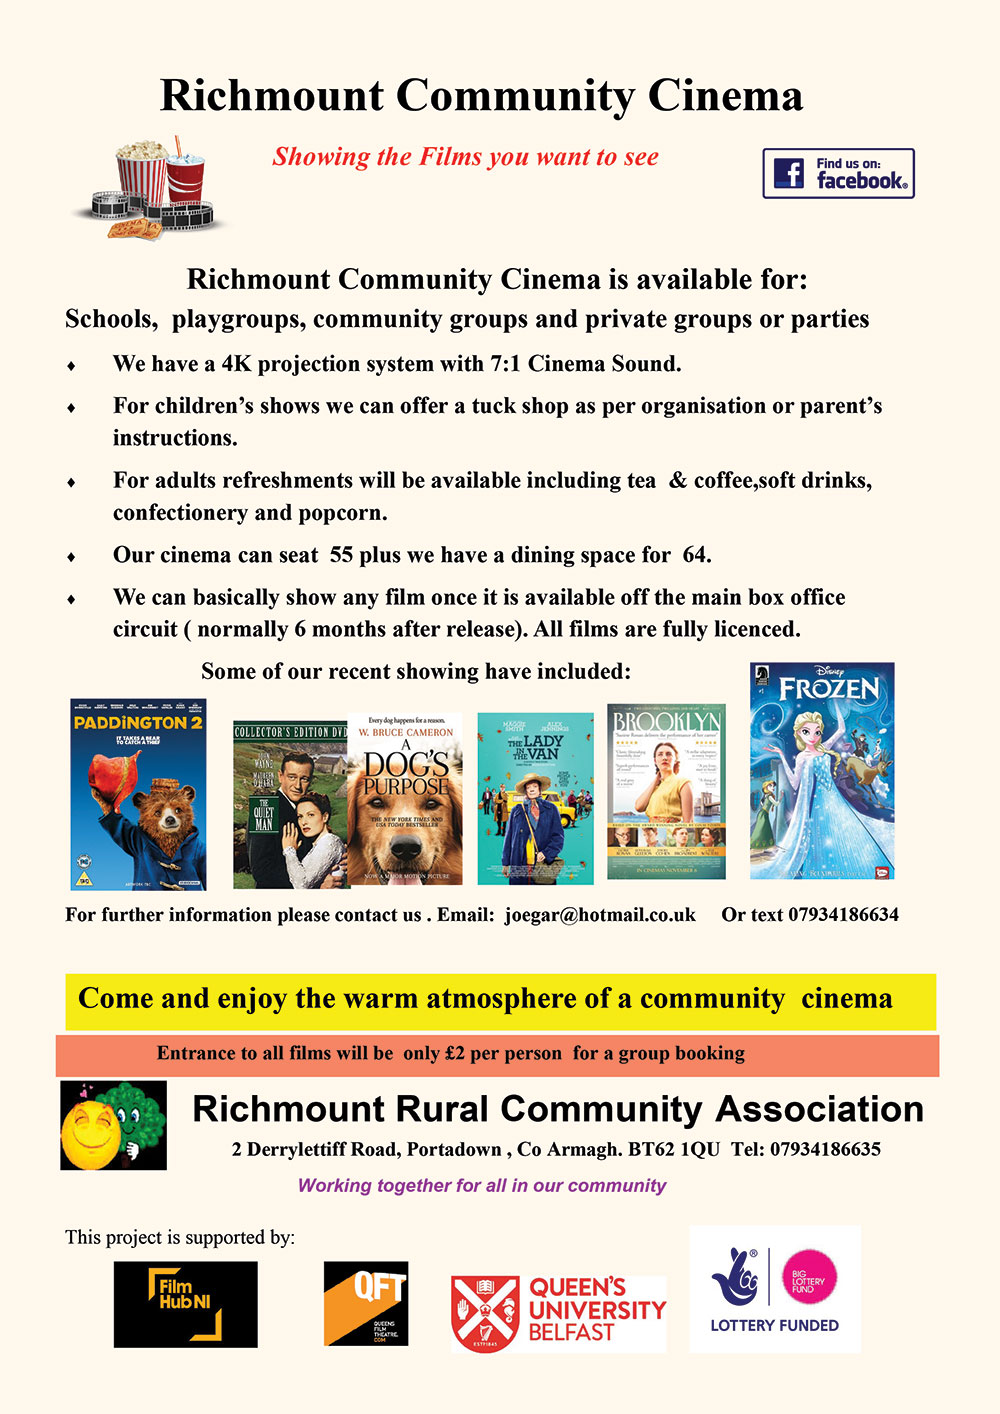 Richmount Community Cinema